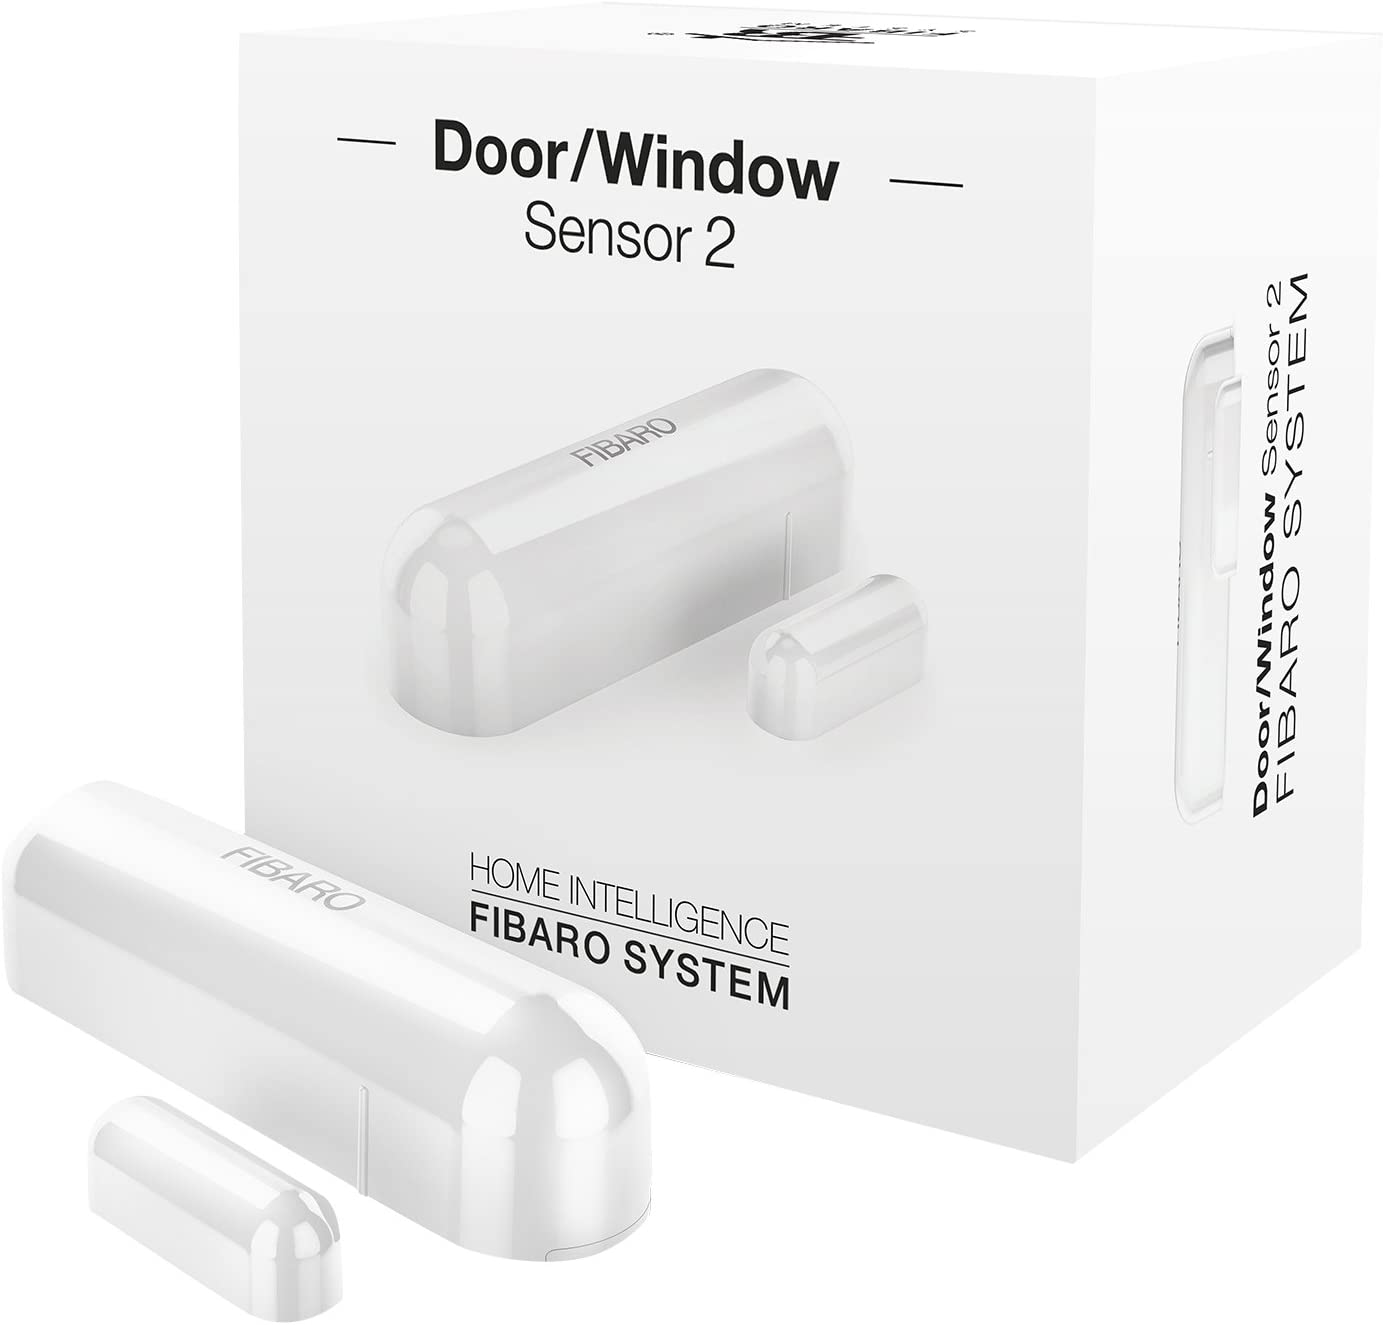 Fibaro FGDW-002-1 FGDW0021 Door/Window v2 with Temperature Sensor, Z-Wave Plus, FGWD-002-1, White